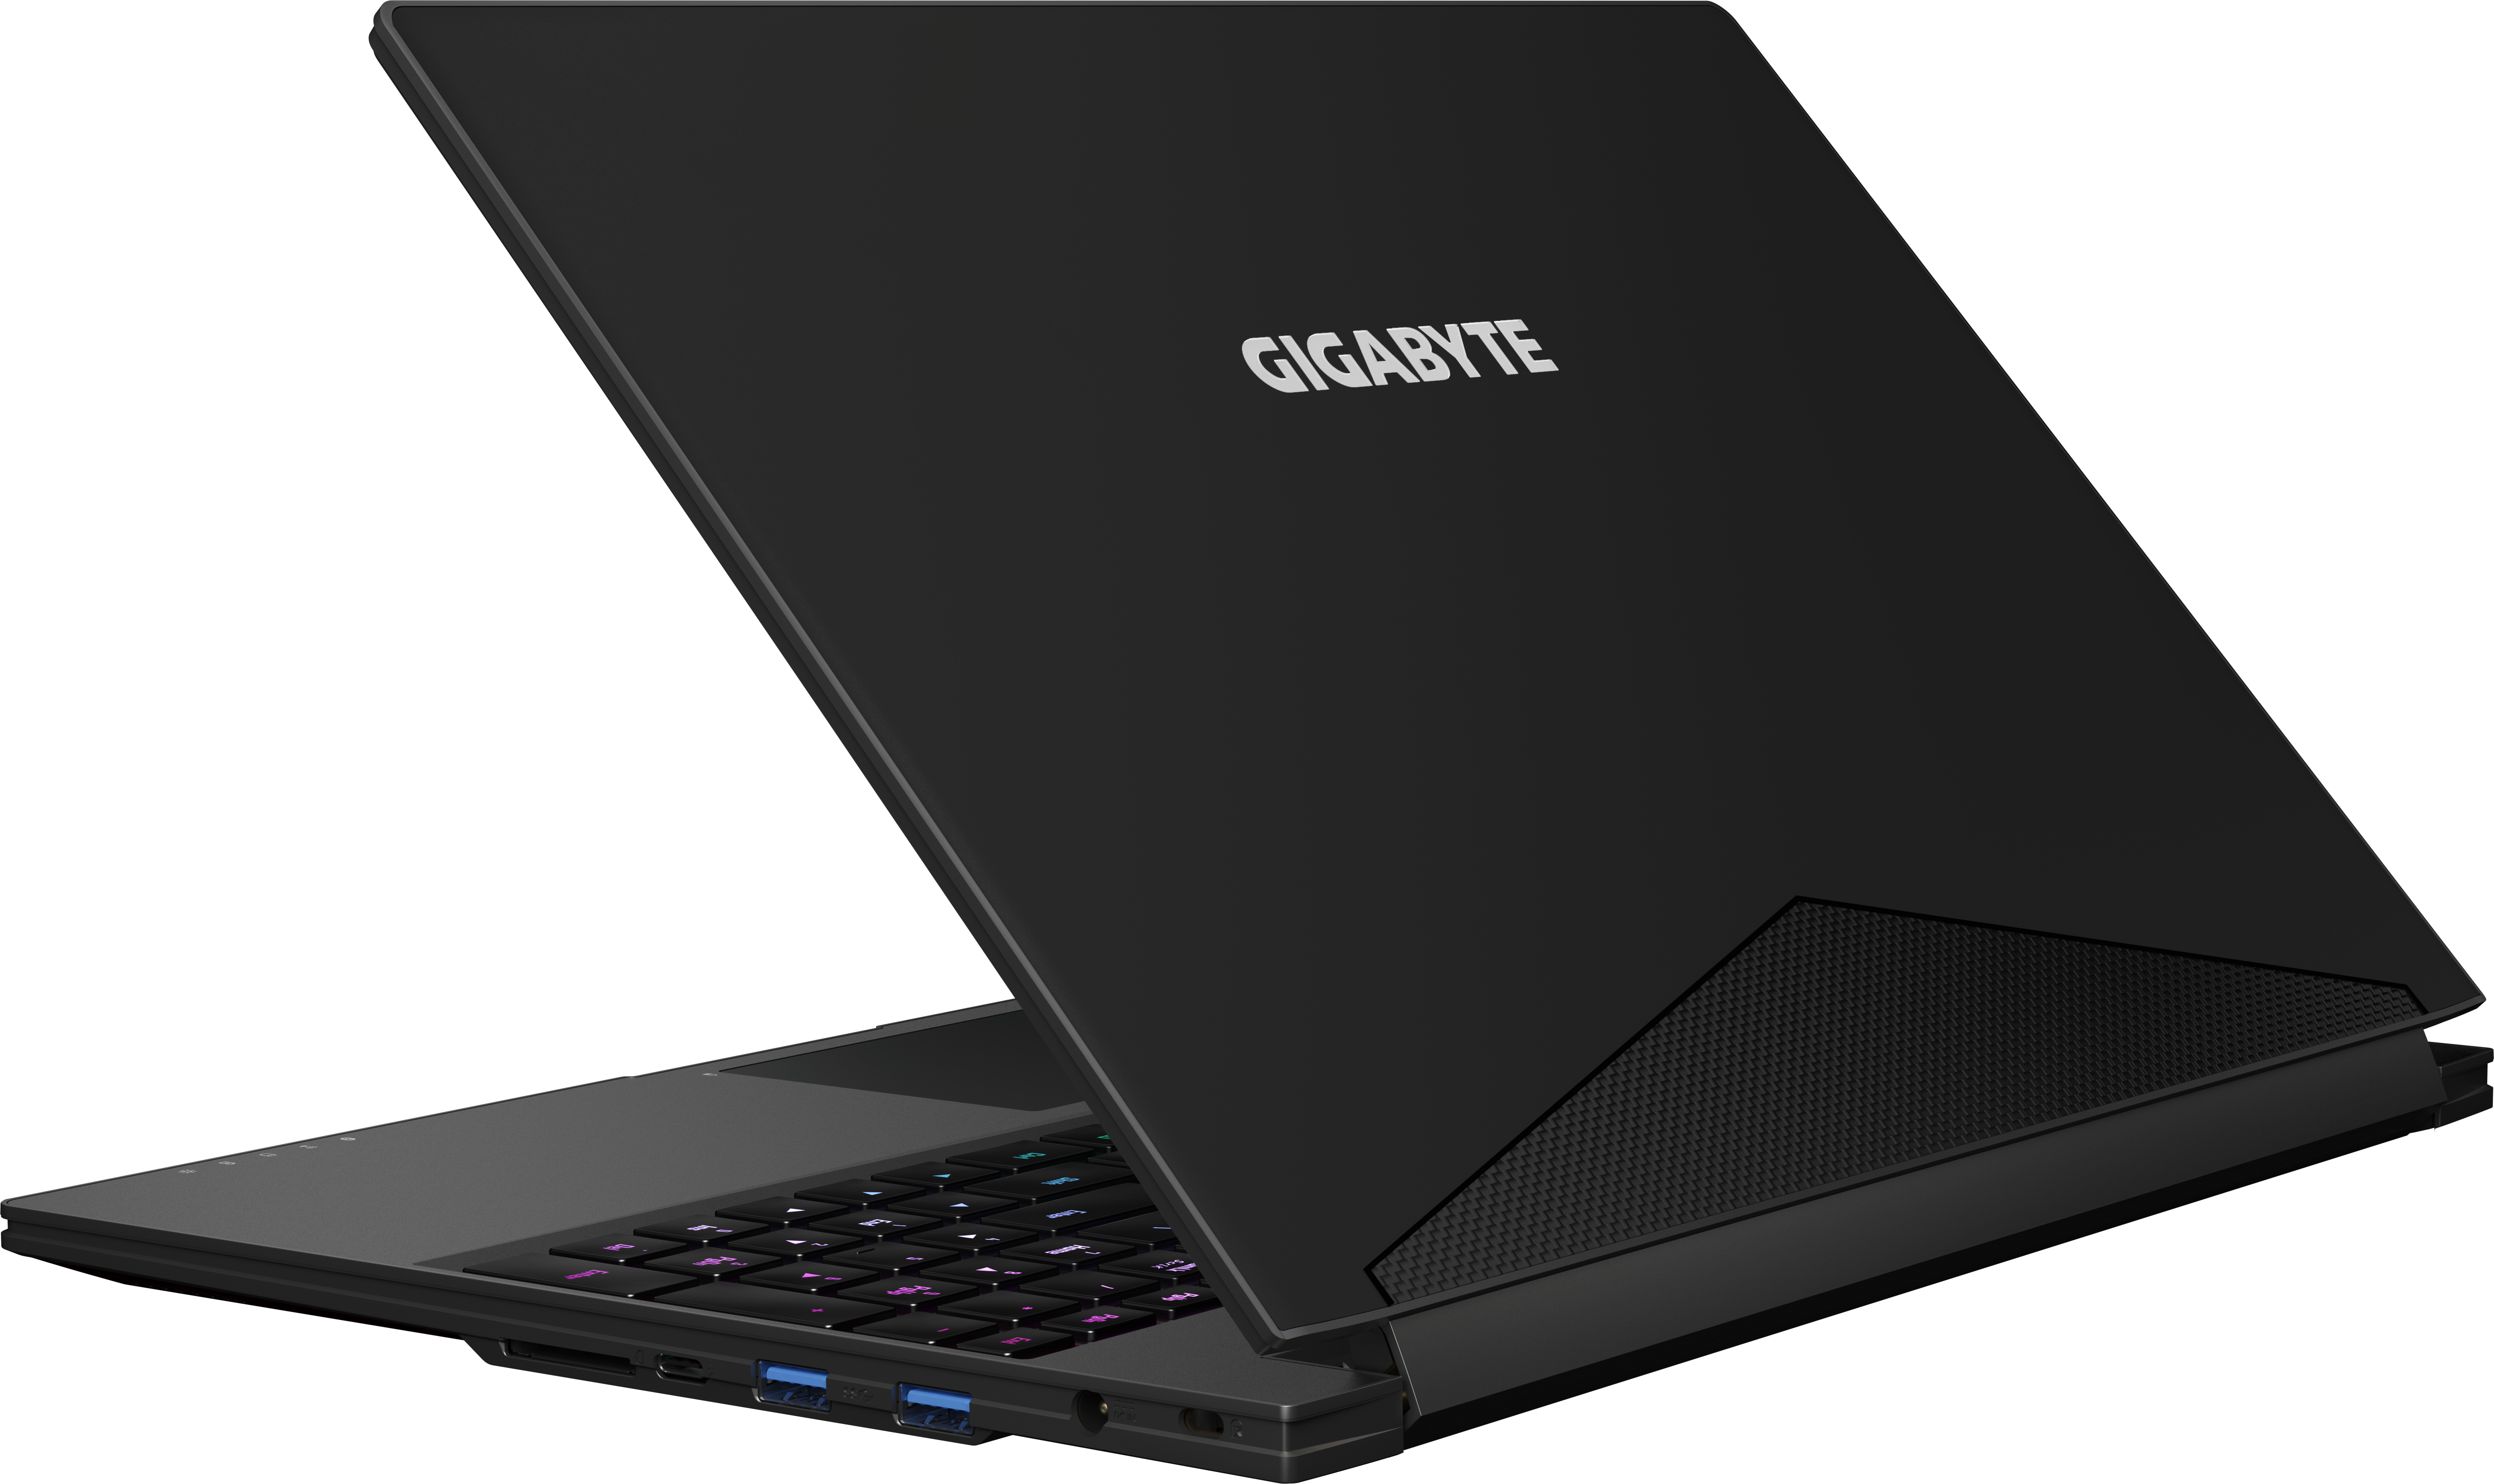 Gallery: GIGABYTE AERO 15 v8 Notebooks